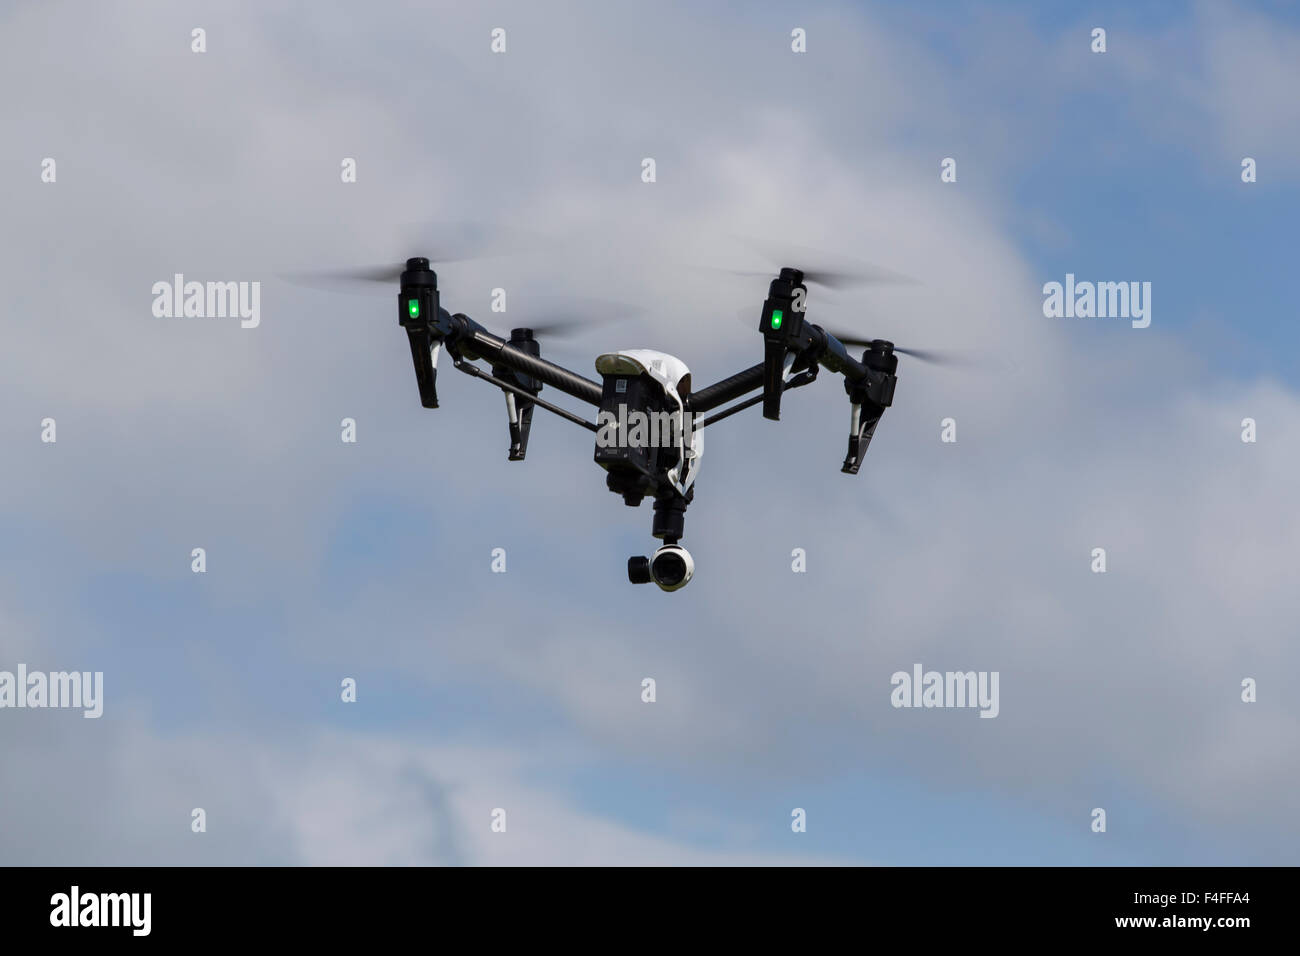 Quadcopter Drone DJI Inspire with camera for aerial photography, photos and videos. - Stock Image